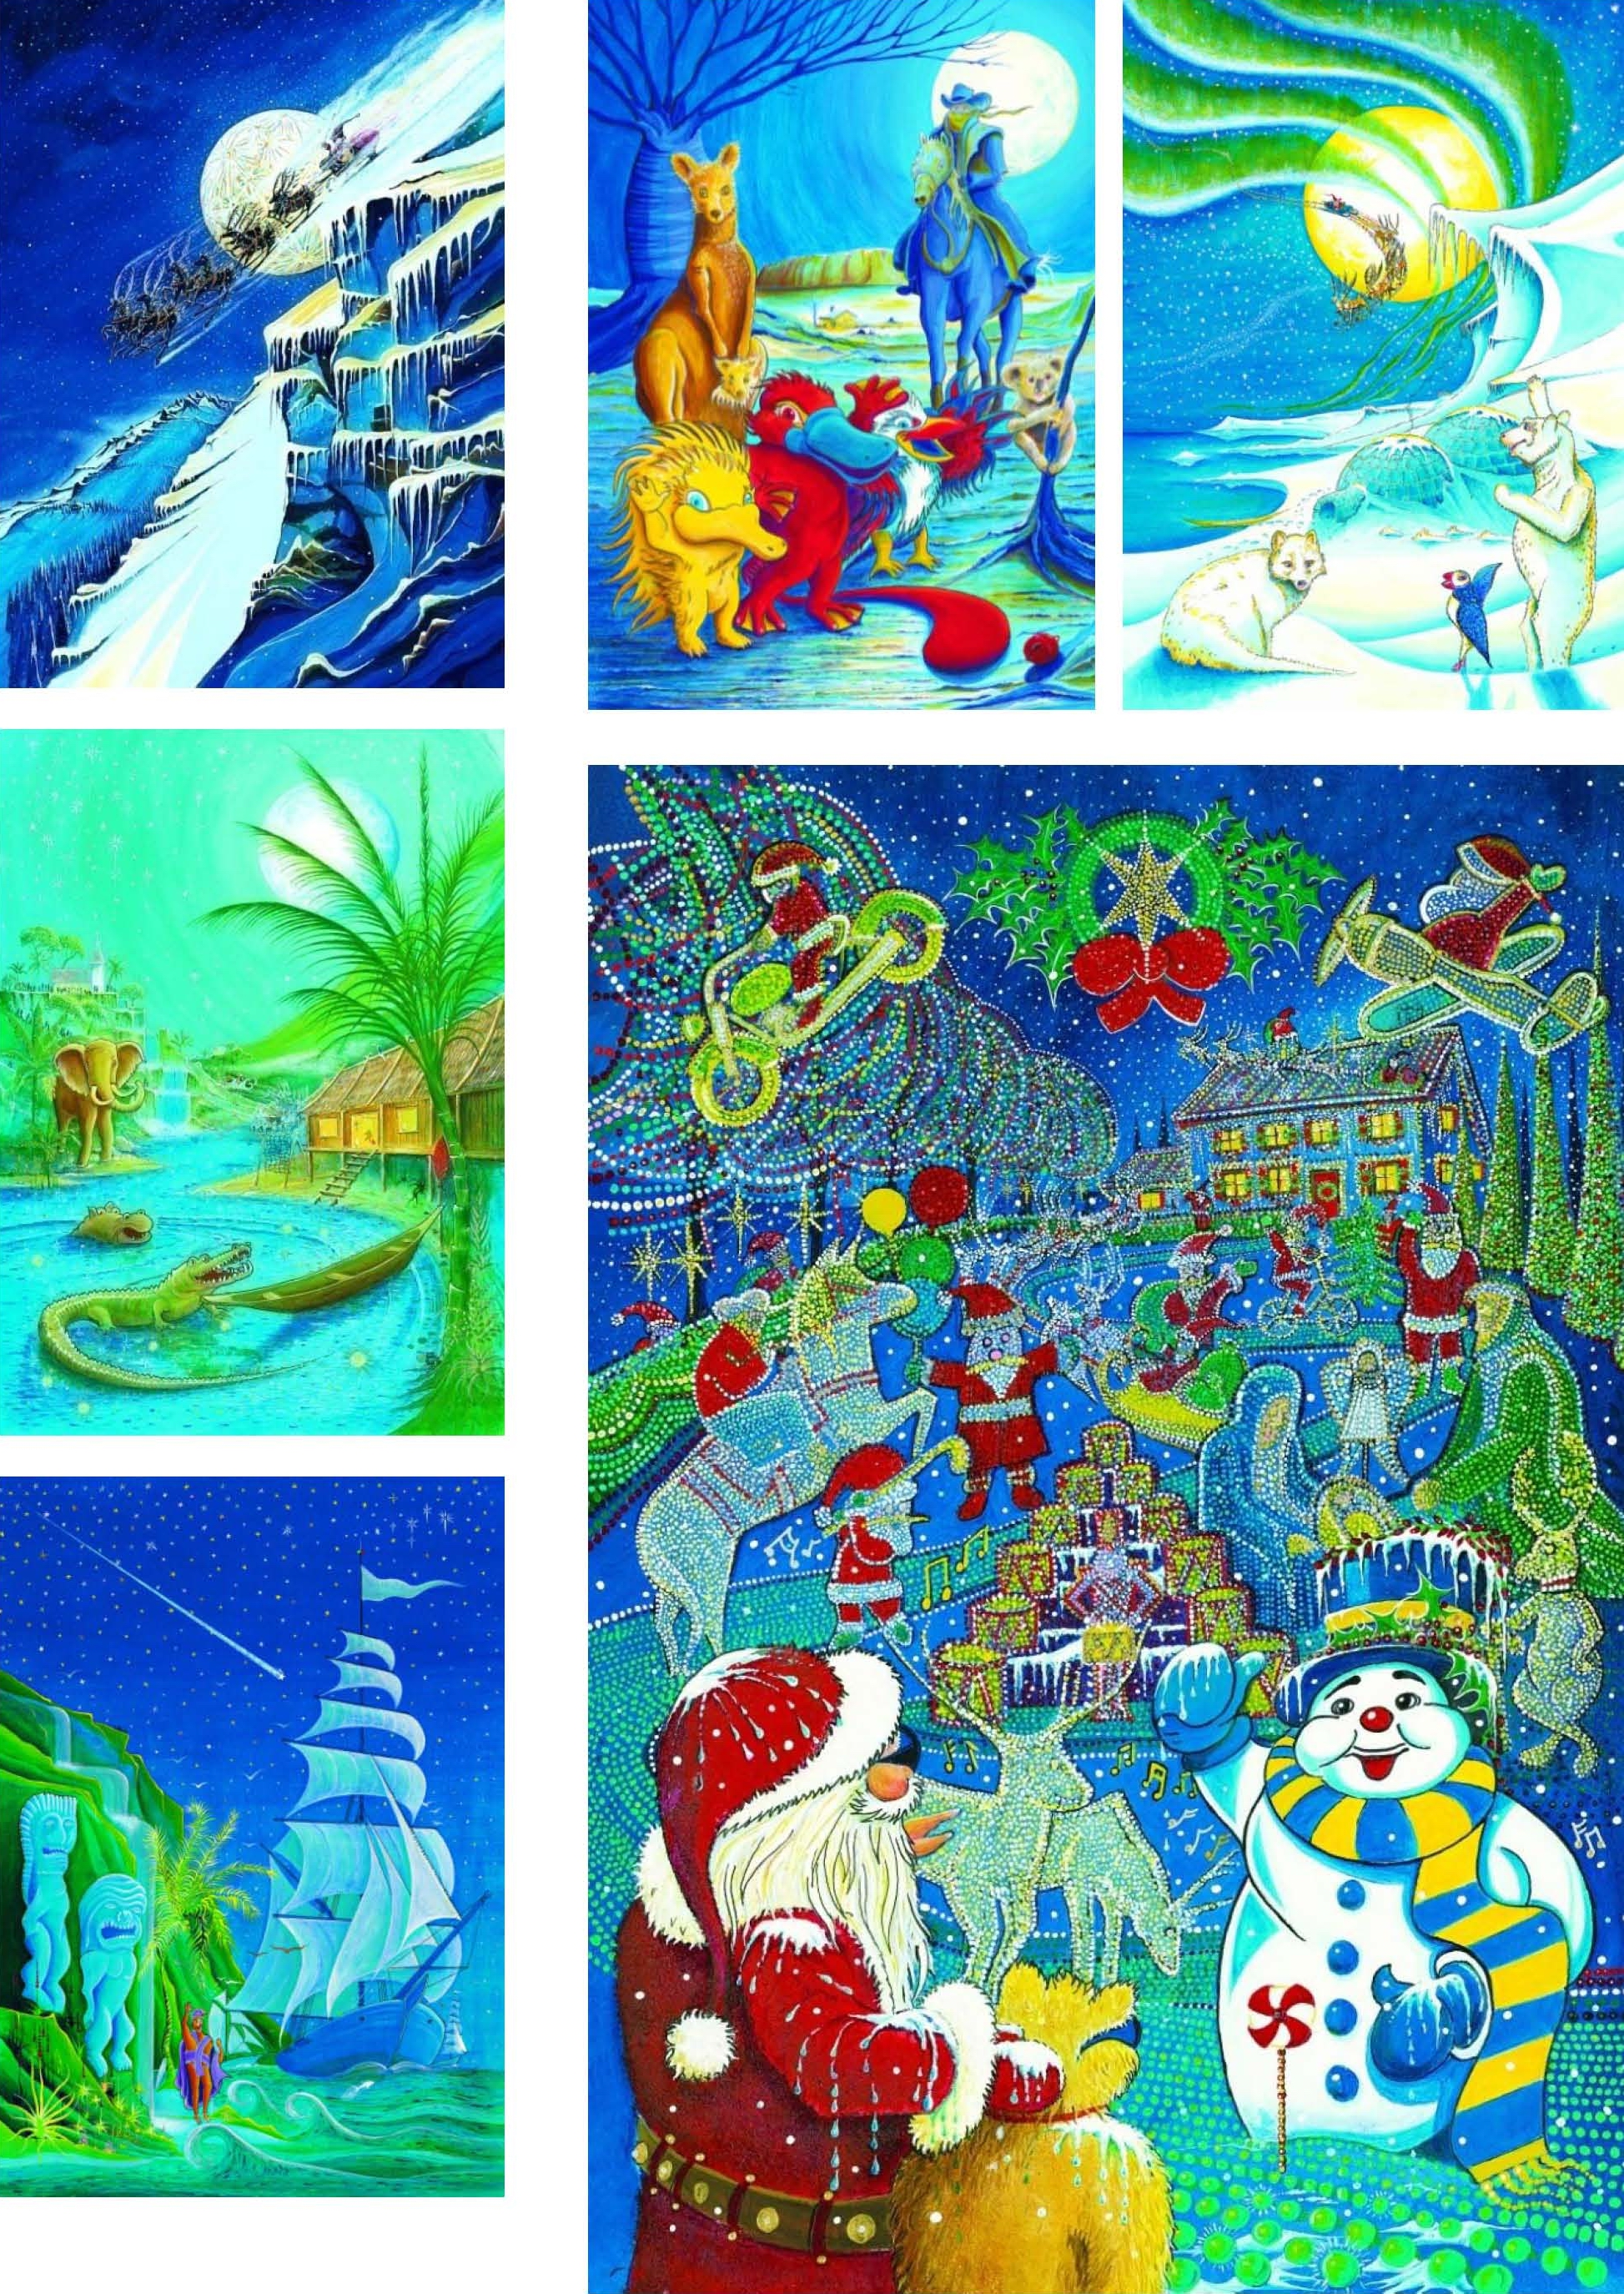 Images from Santa & The Little Teddy Bear, a Christmas holiday book classic published by Real Magic Design Publishing a Cheri and Peter john Lucking epublishing ebook and book publishing and marketing firm